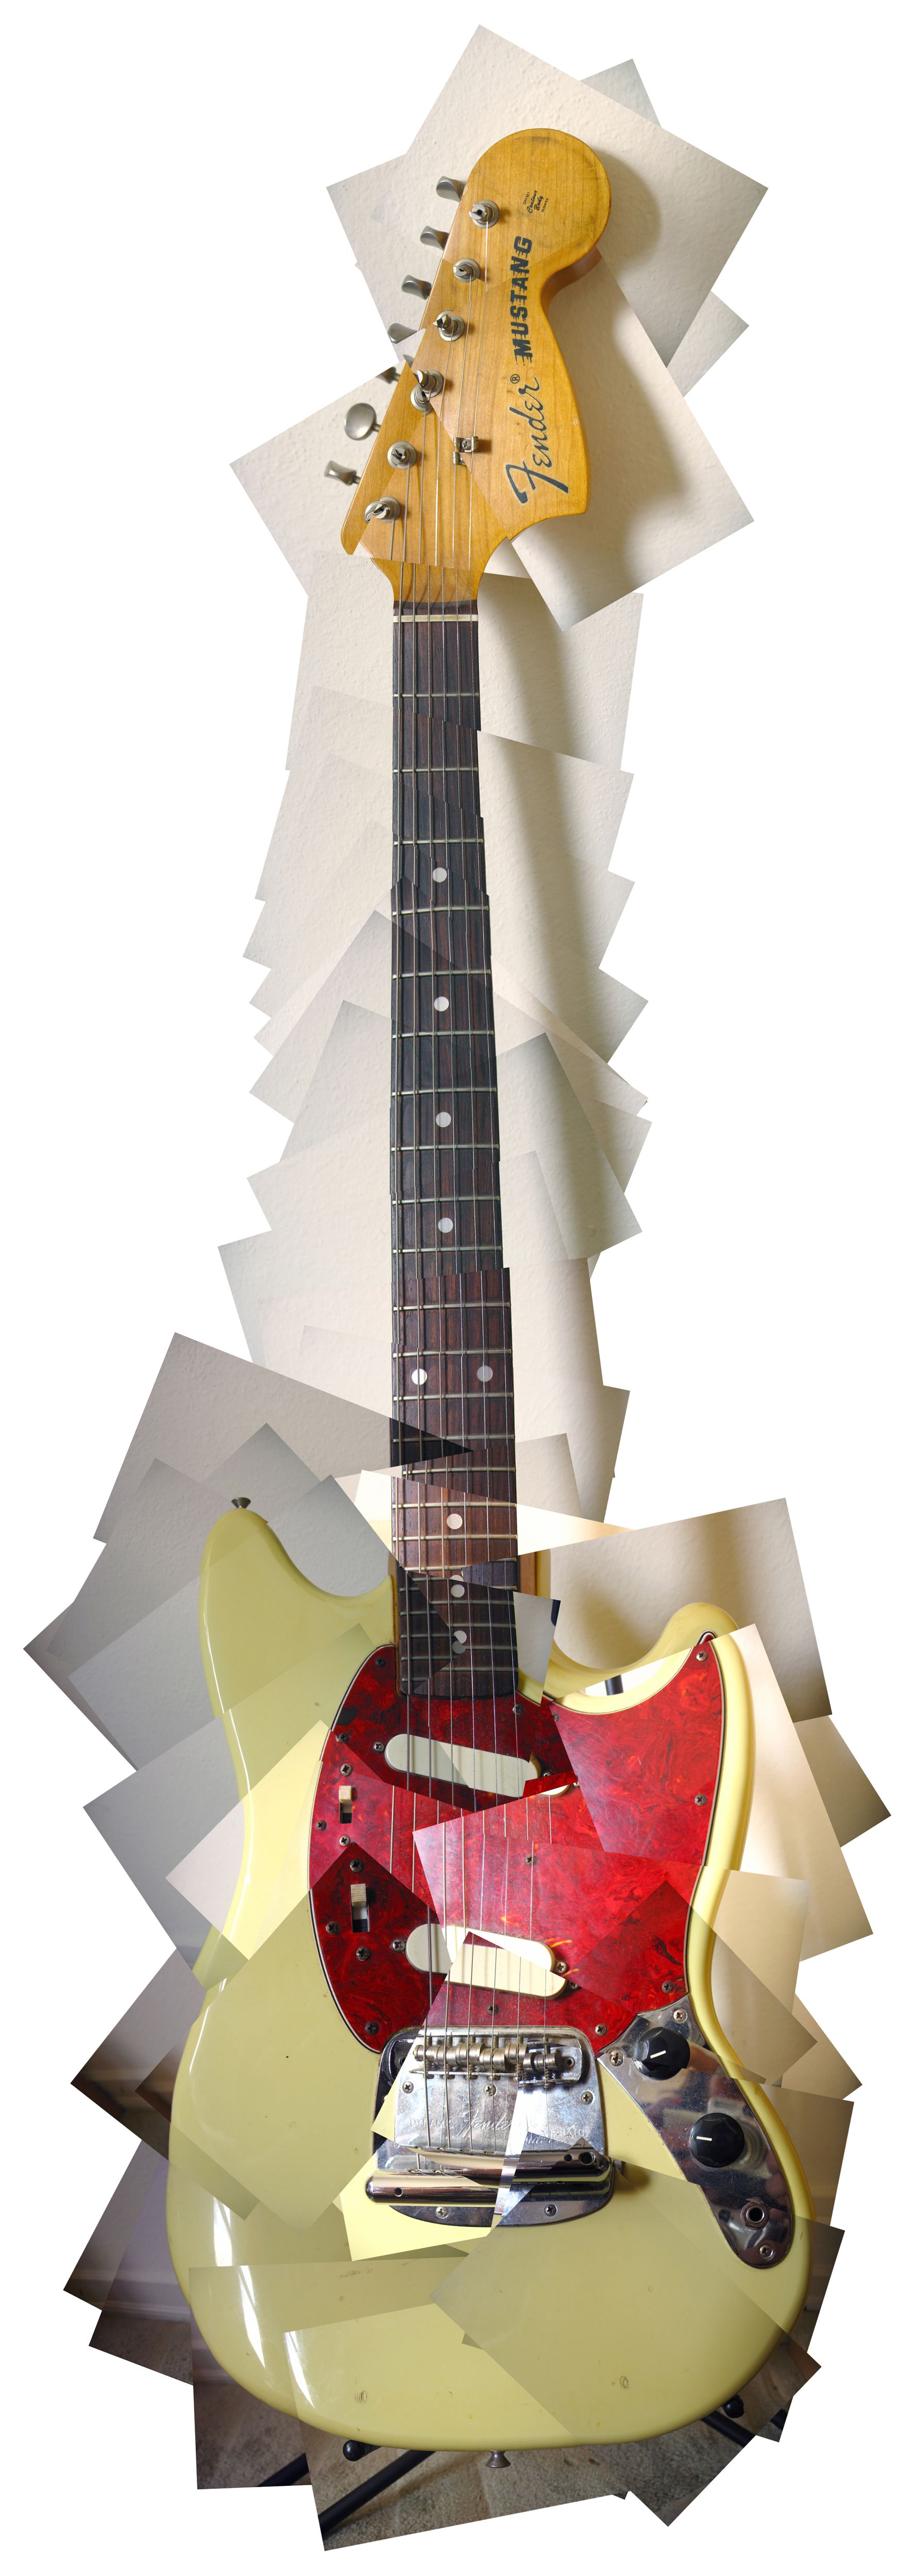 Fender Mustang puzzle